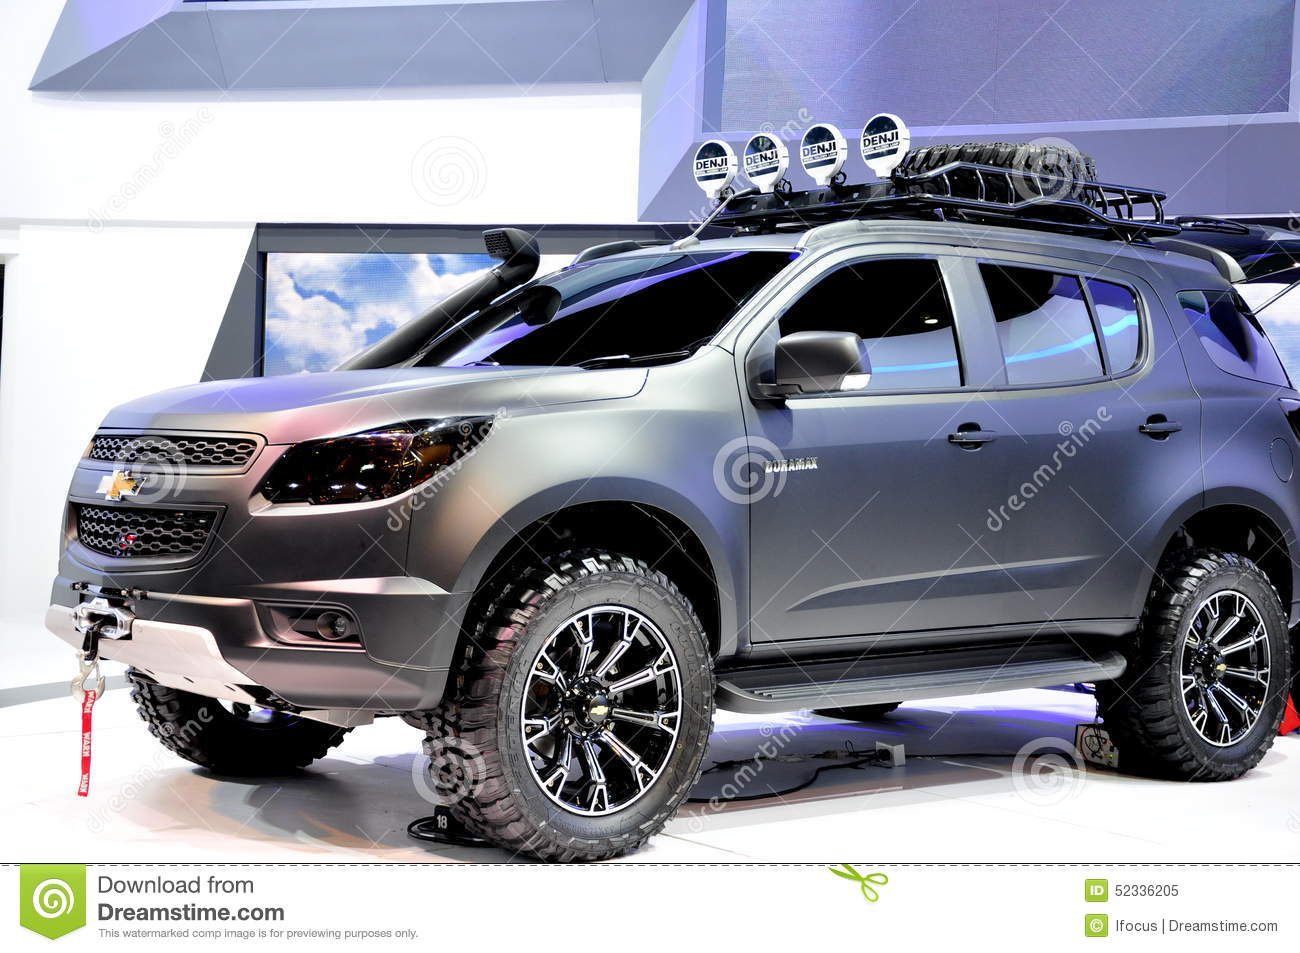 Should GM Sell the Trailblazer in America Again? - Page 2